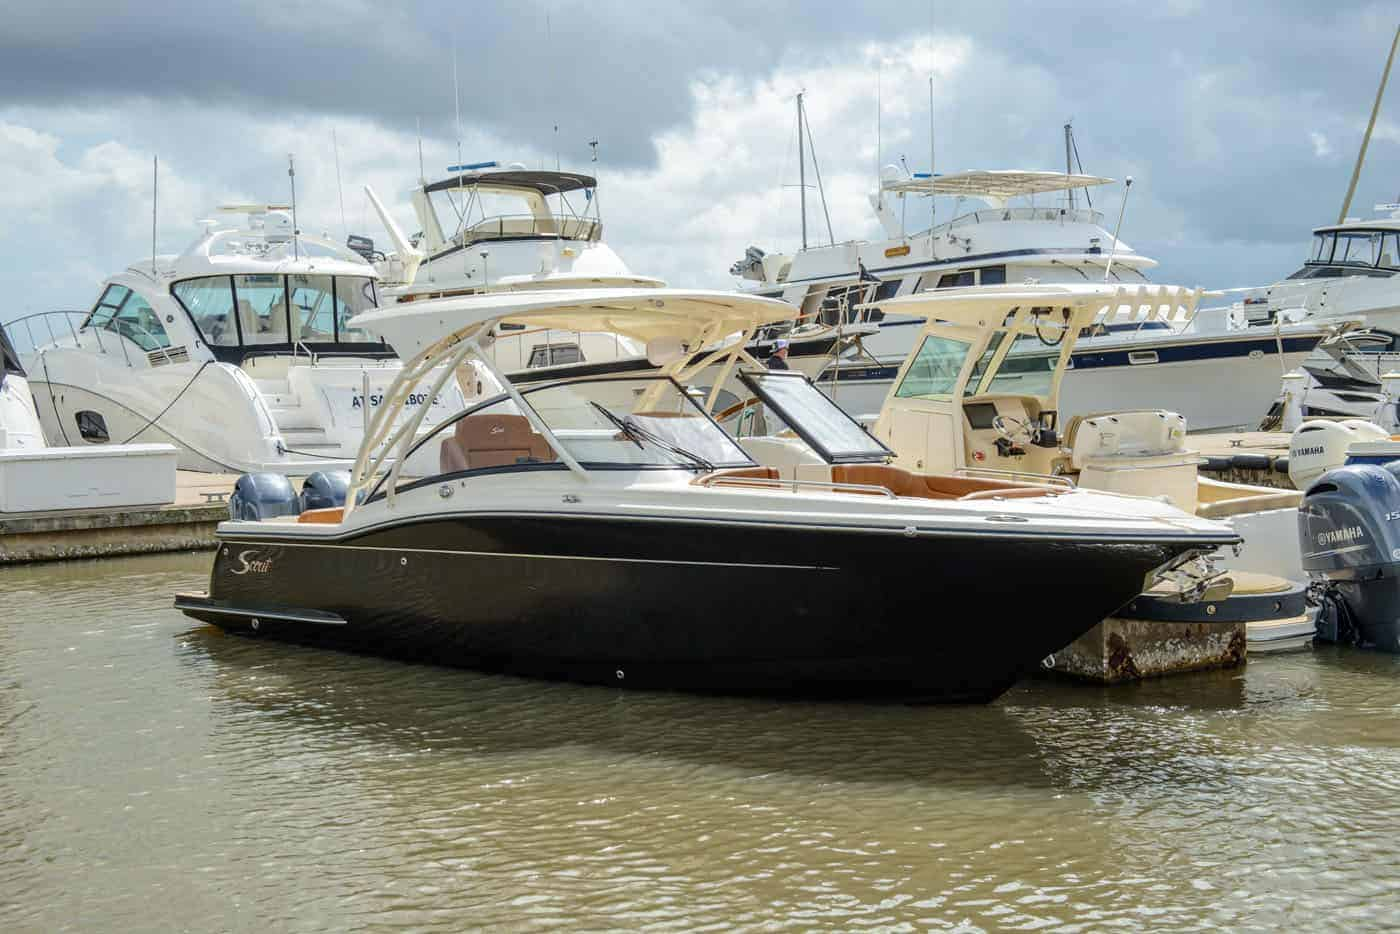 255D black hull with hard top